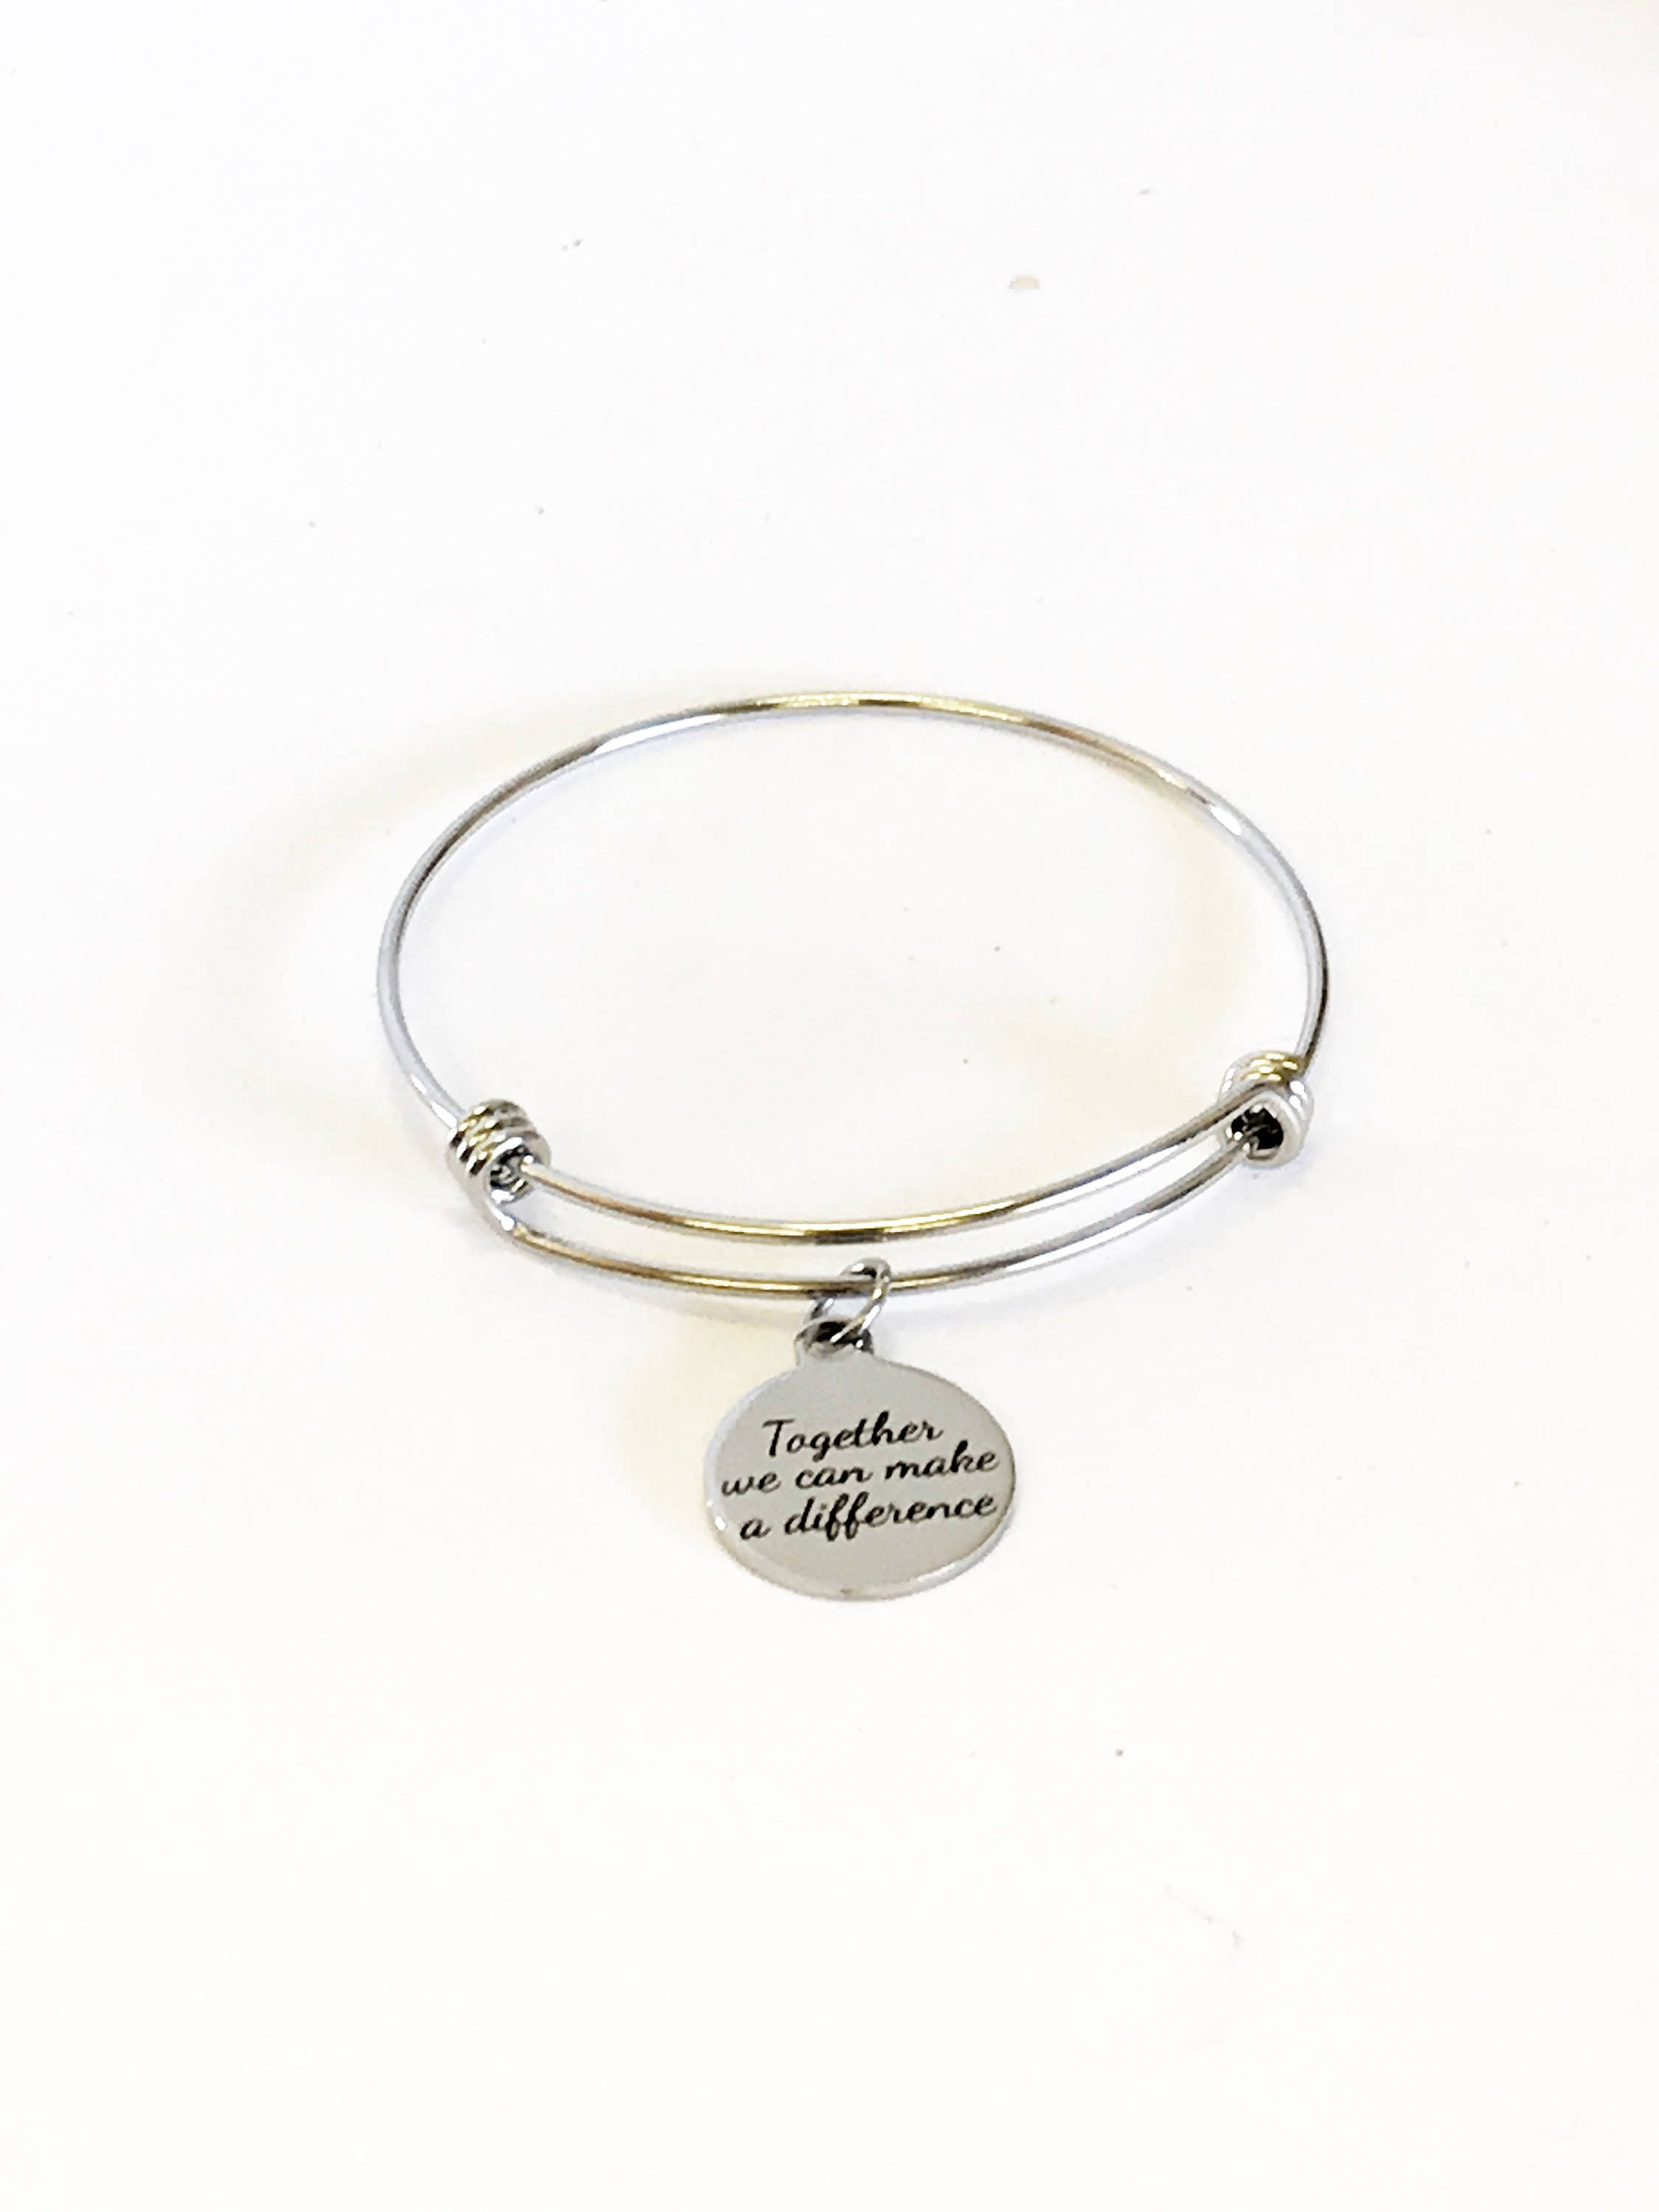 up bracelet adjustable never give pin charms cancer wire ribbon awareness silver black melanoma